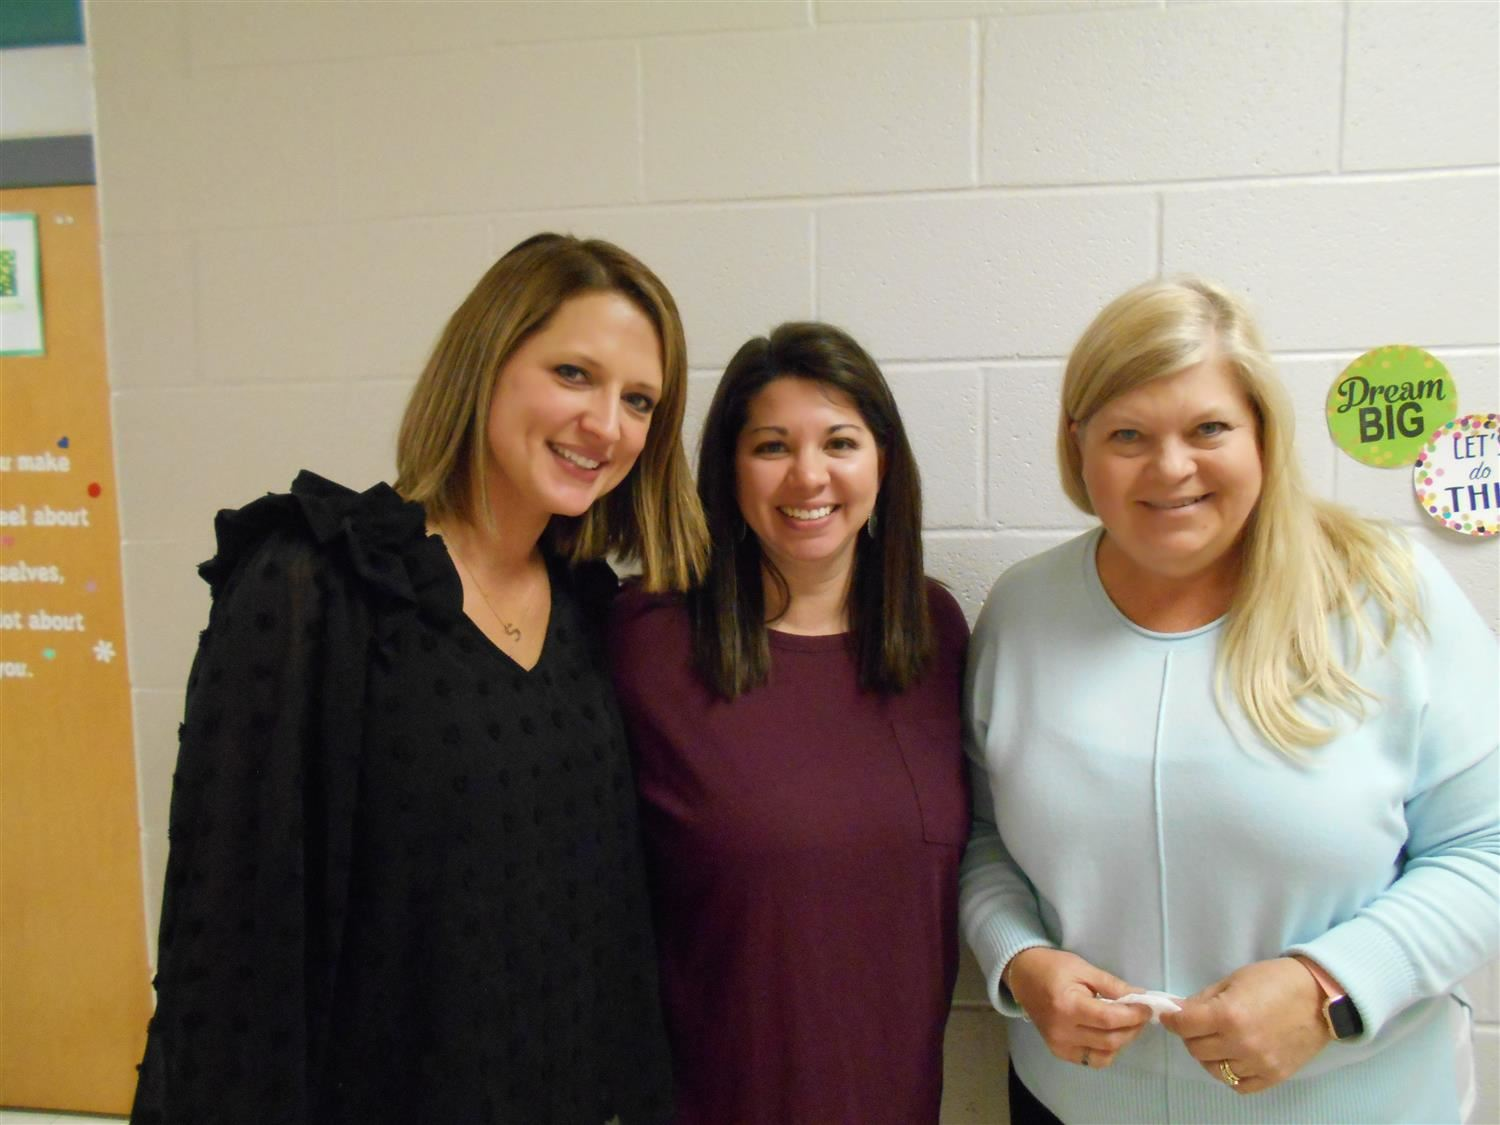 Third Grade Teachers - Mrs. Ide, Ms. Ayres, and Ms. Horne